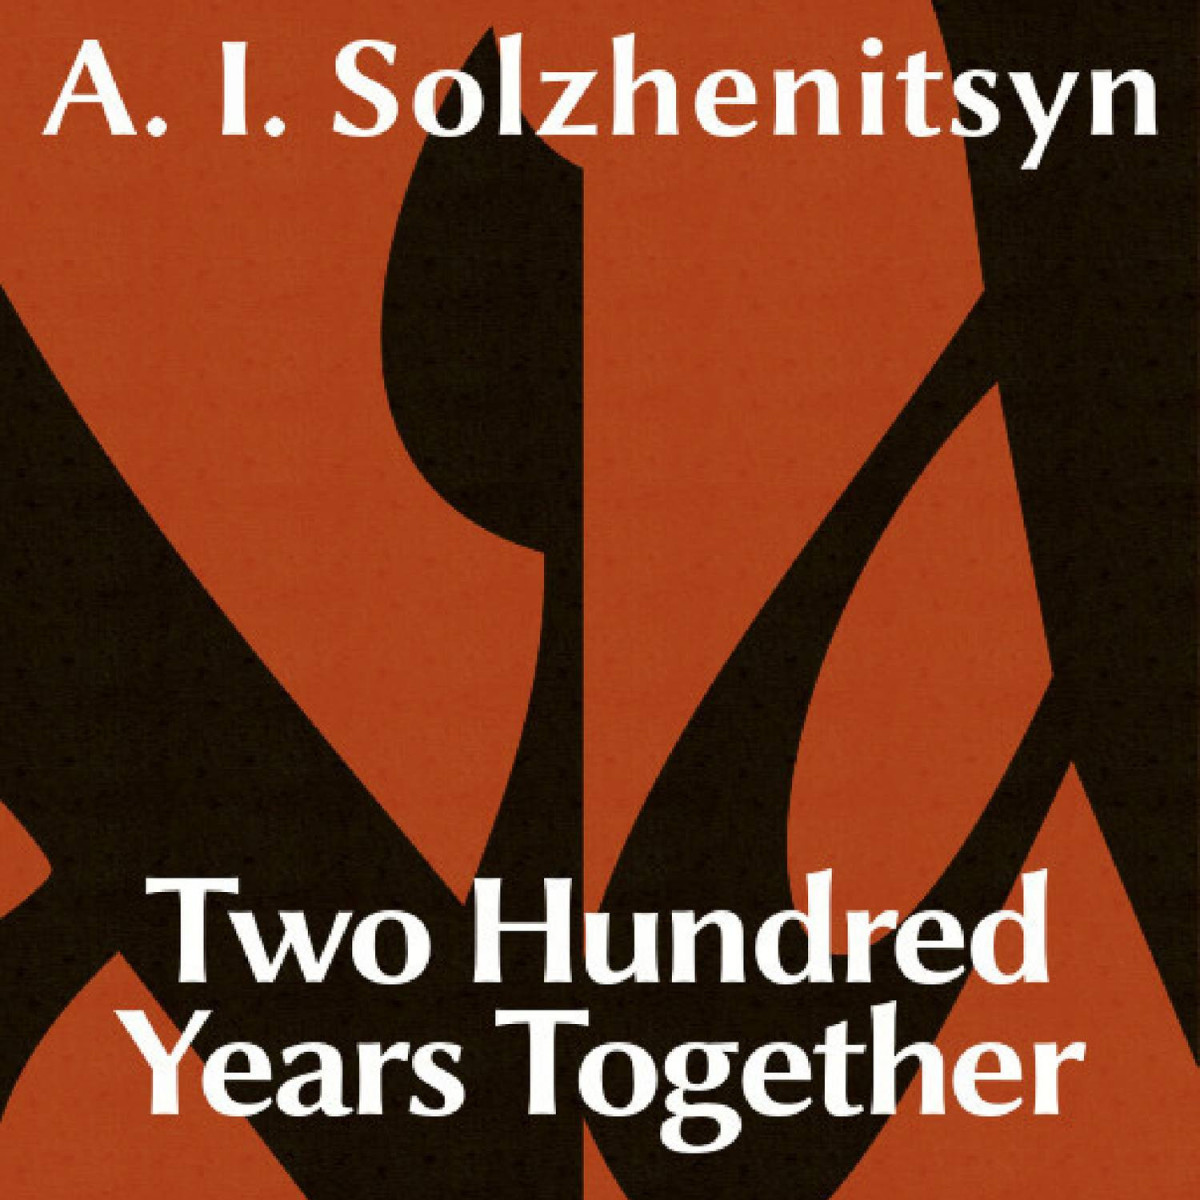 Two Hundred Years Together